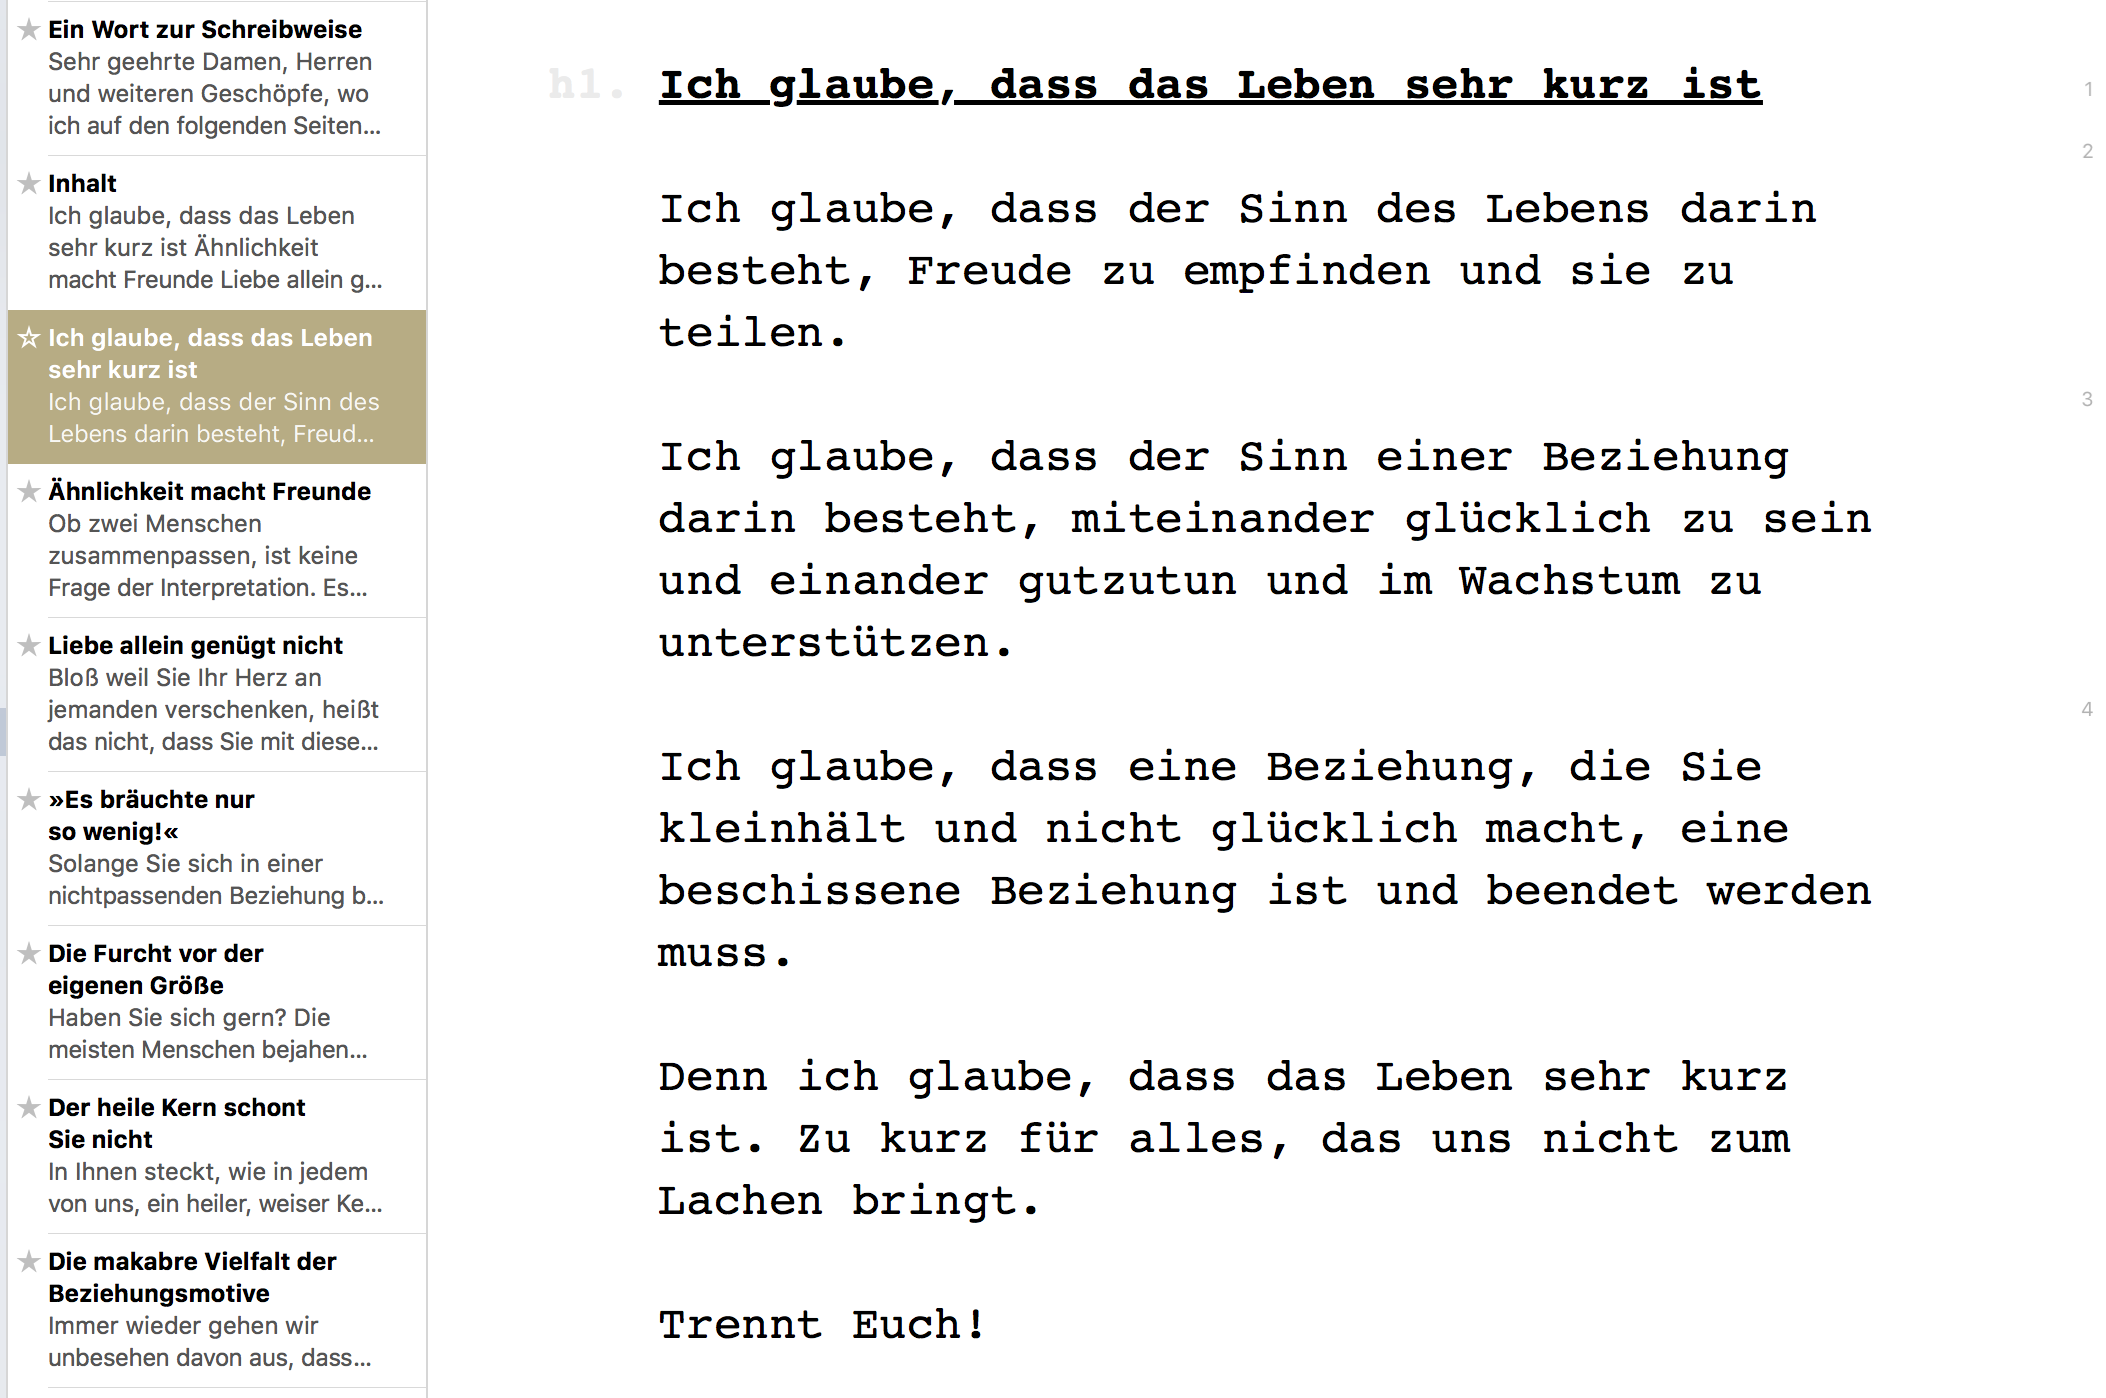 A screenshot from Meyer's essay Trennt euch!, written with Ulysses